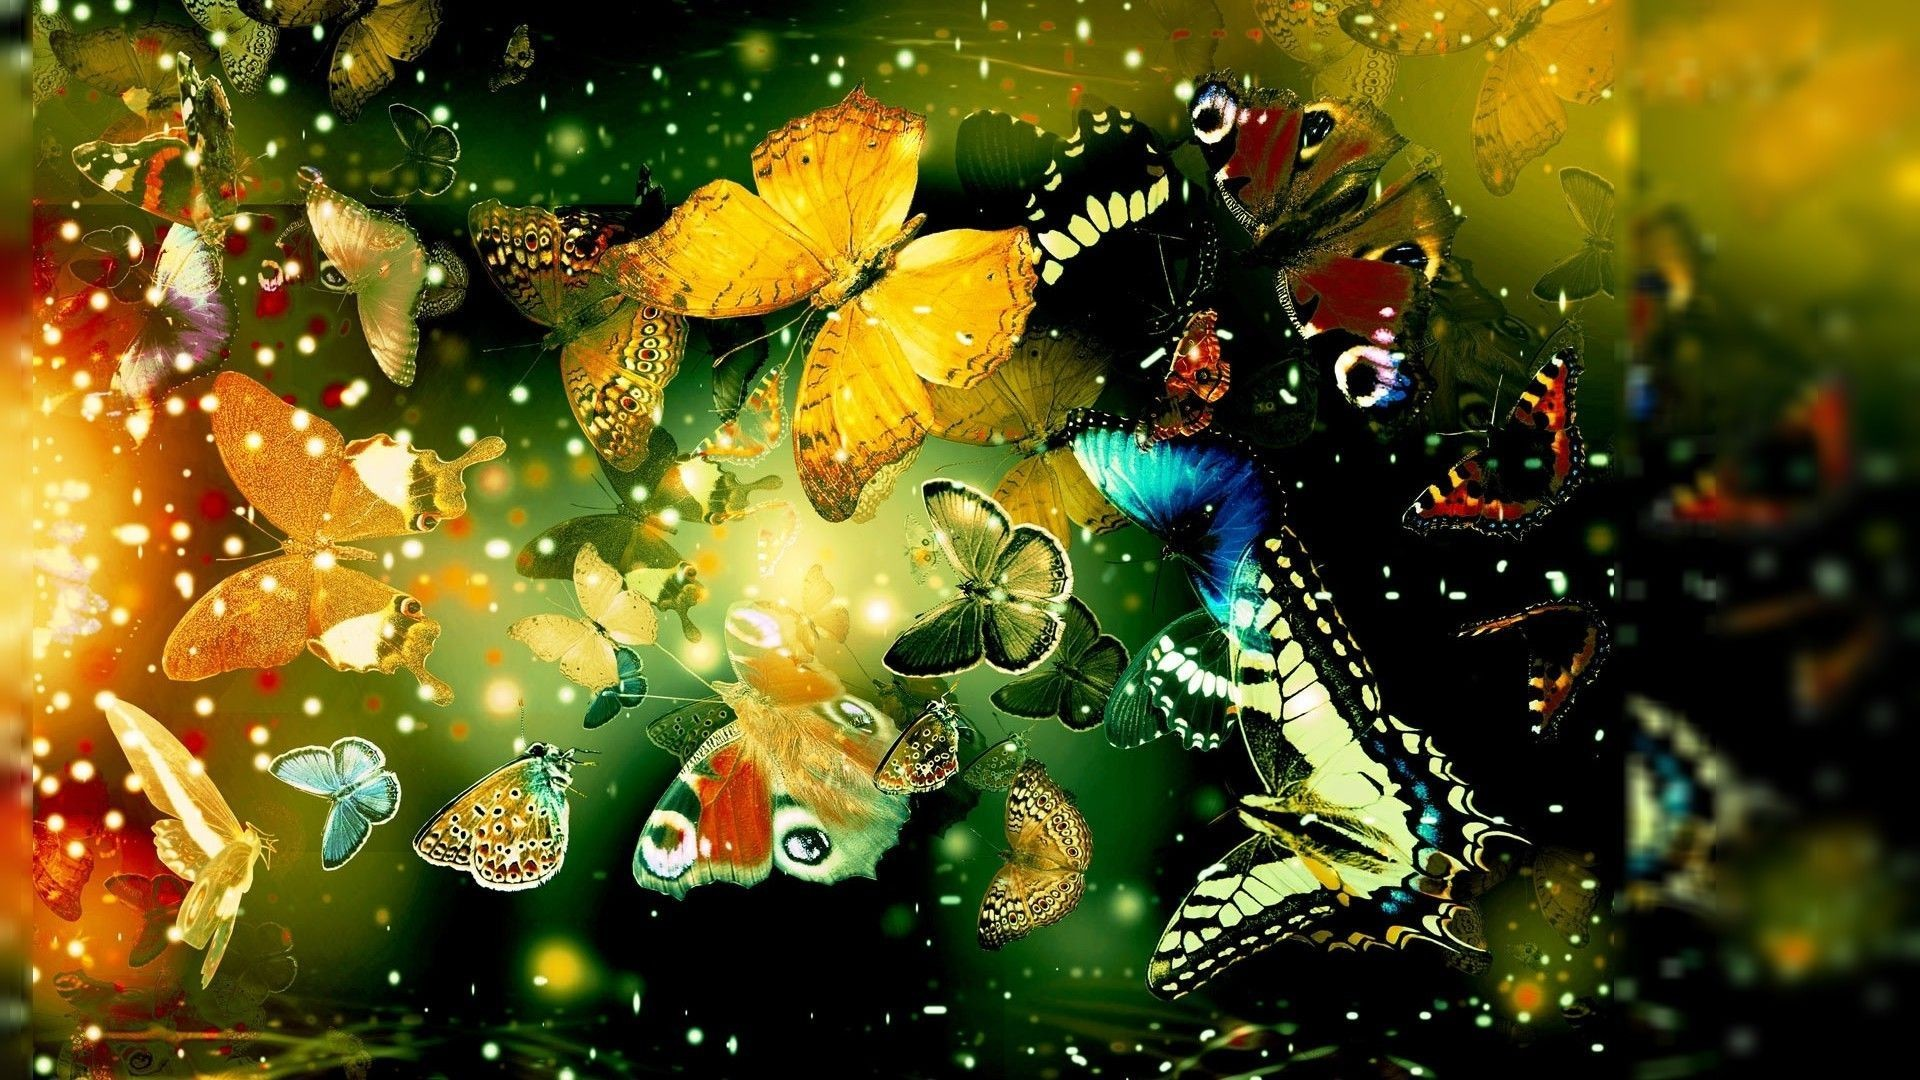 Cool nature desktop backgrounds 56 images - Cool night nature backgrounds ...